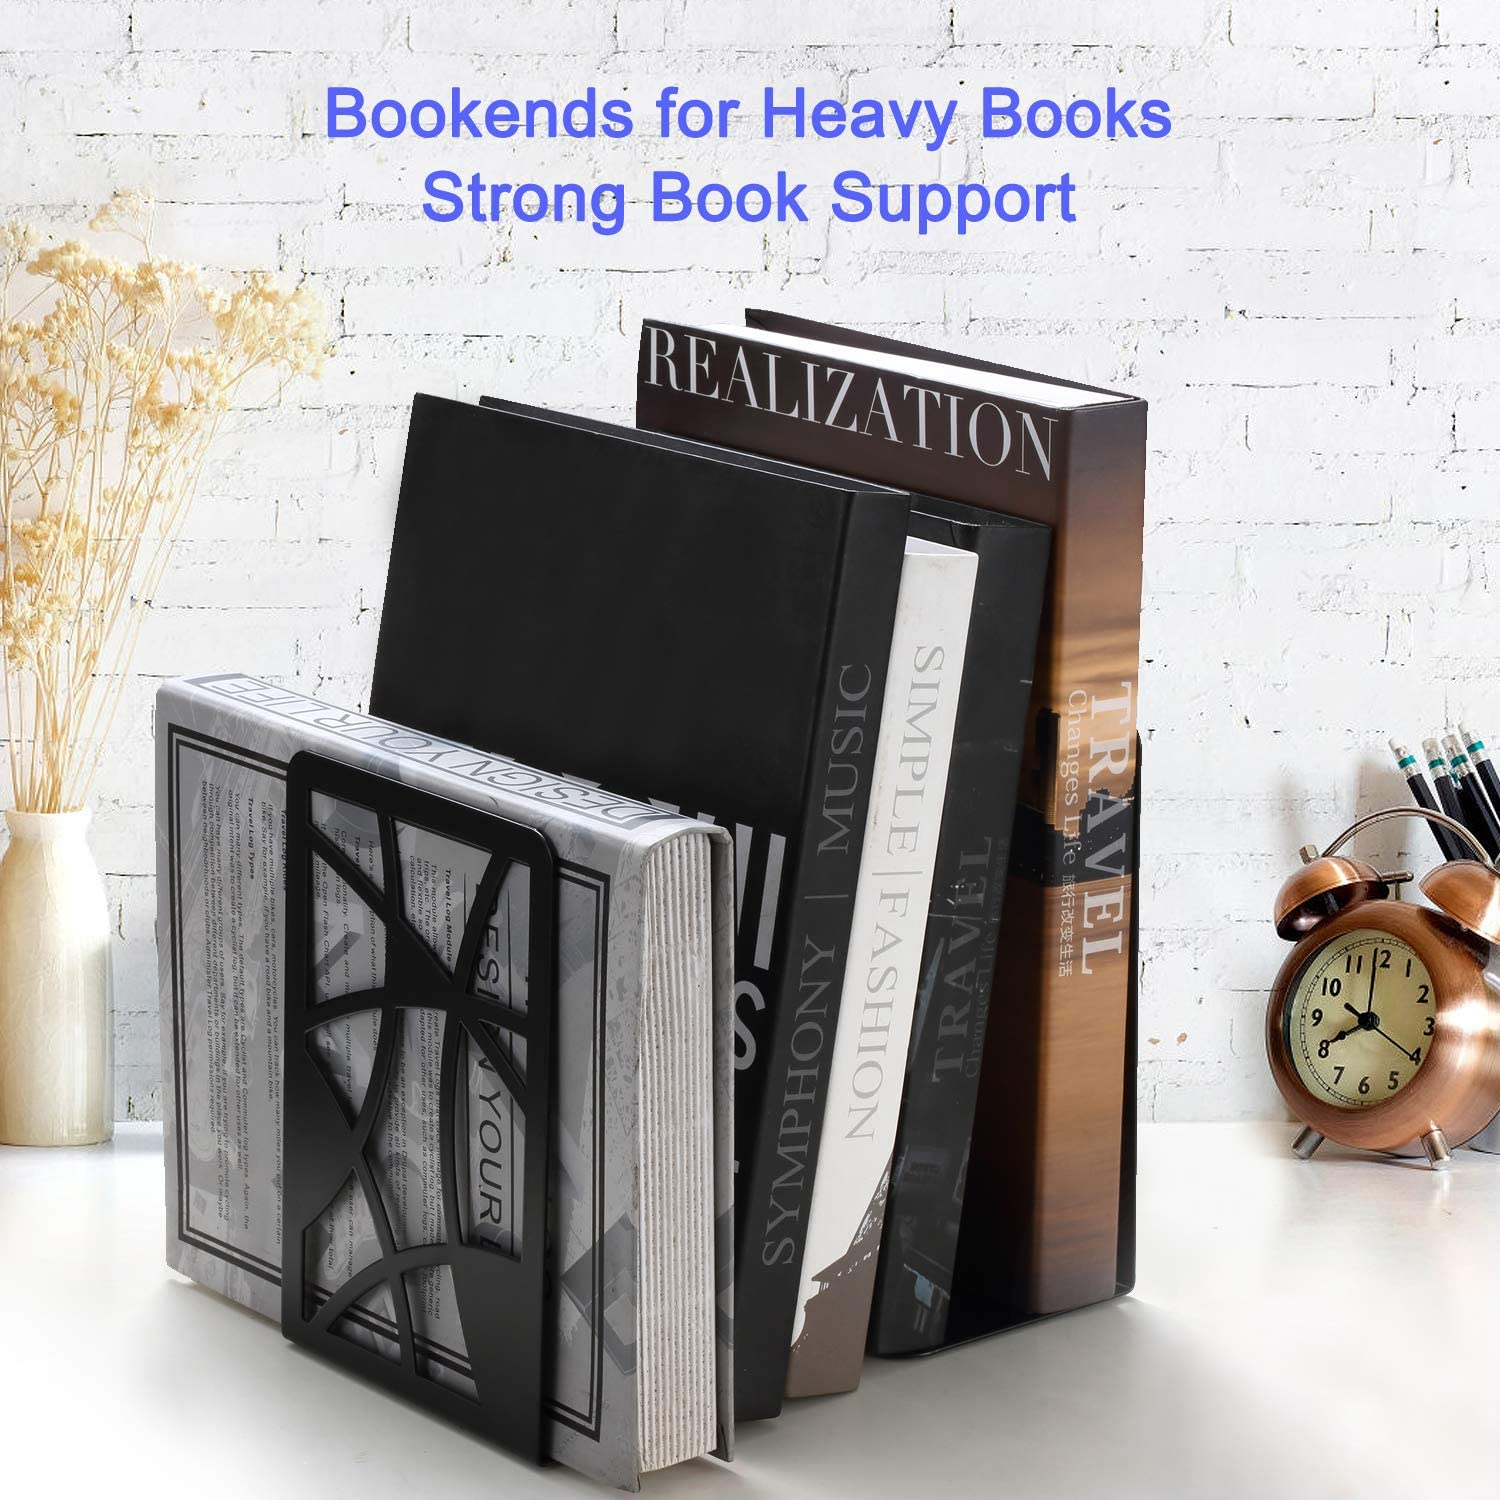 Veecom Black Metal Bookends for Shelves Black- 2 Pair Book Ends Non Skid Bookend Heavy Duty Book Stoppers for Office Decorative Bookends for Heavy Books Bookends Book End Shelf Holder for Kids